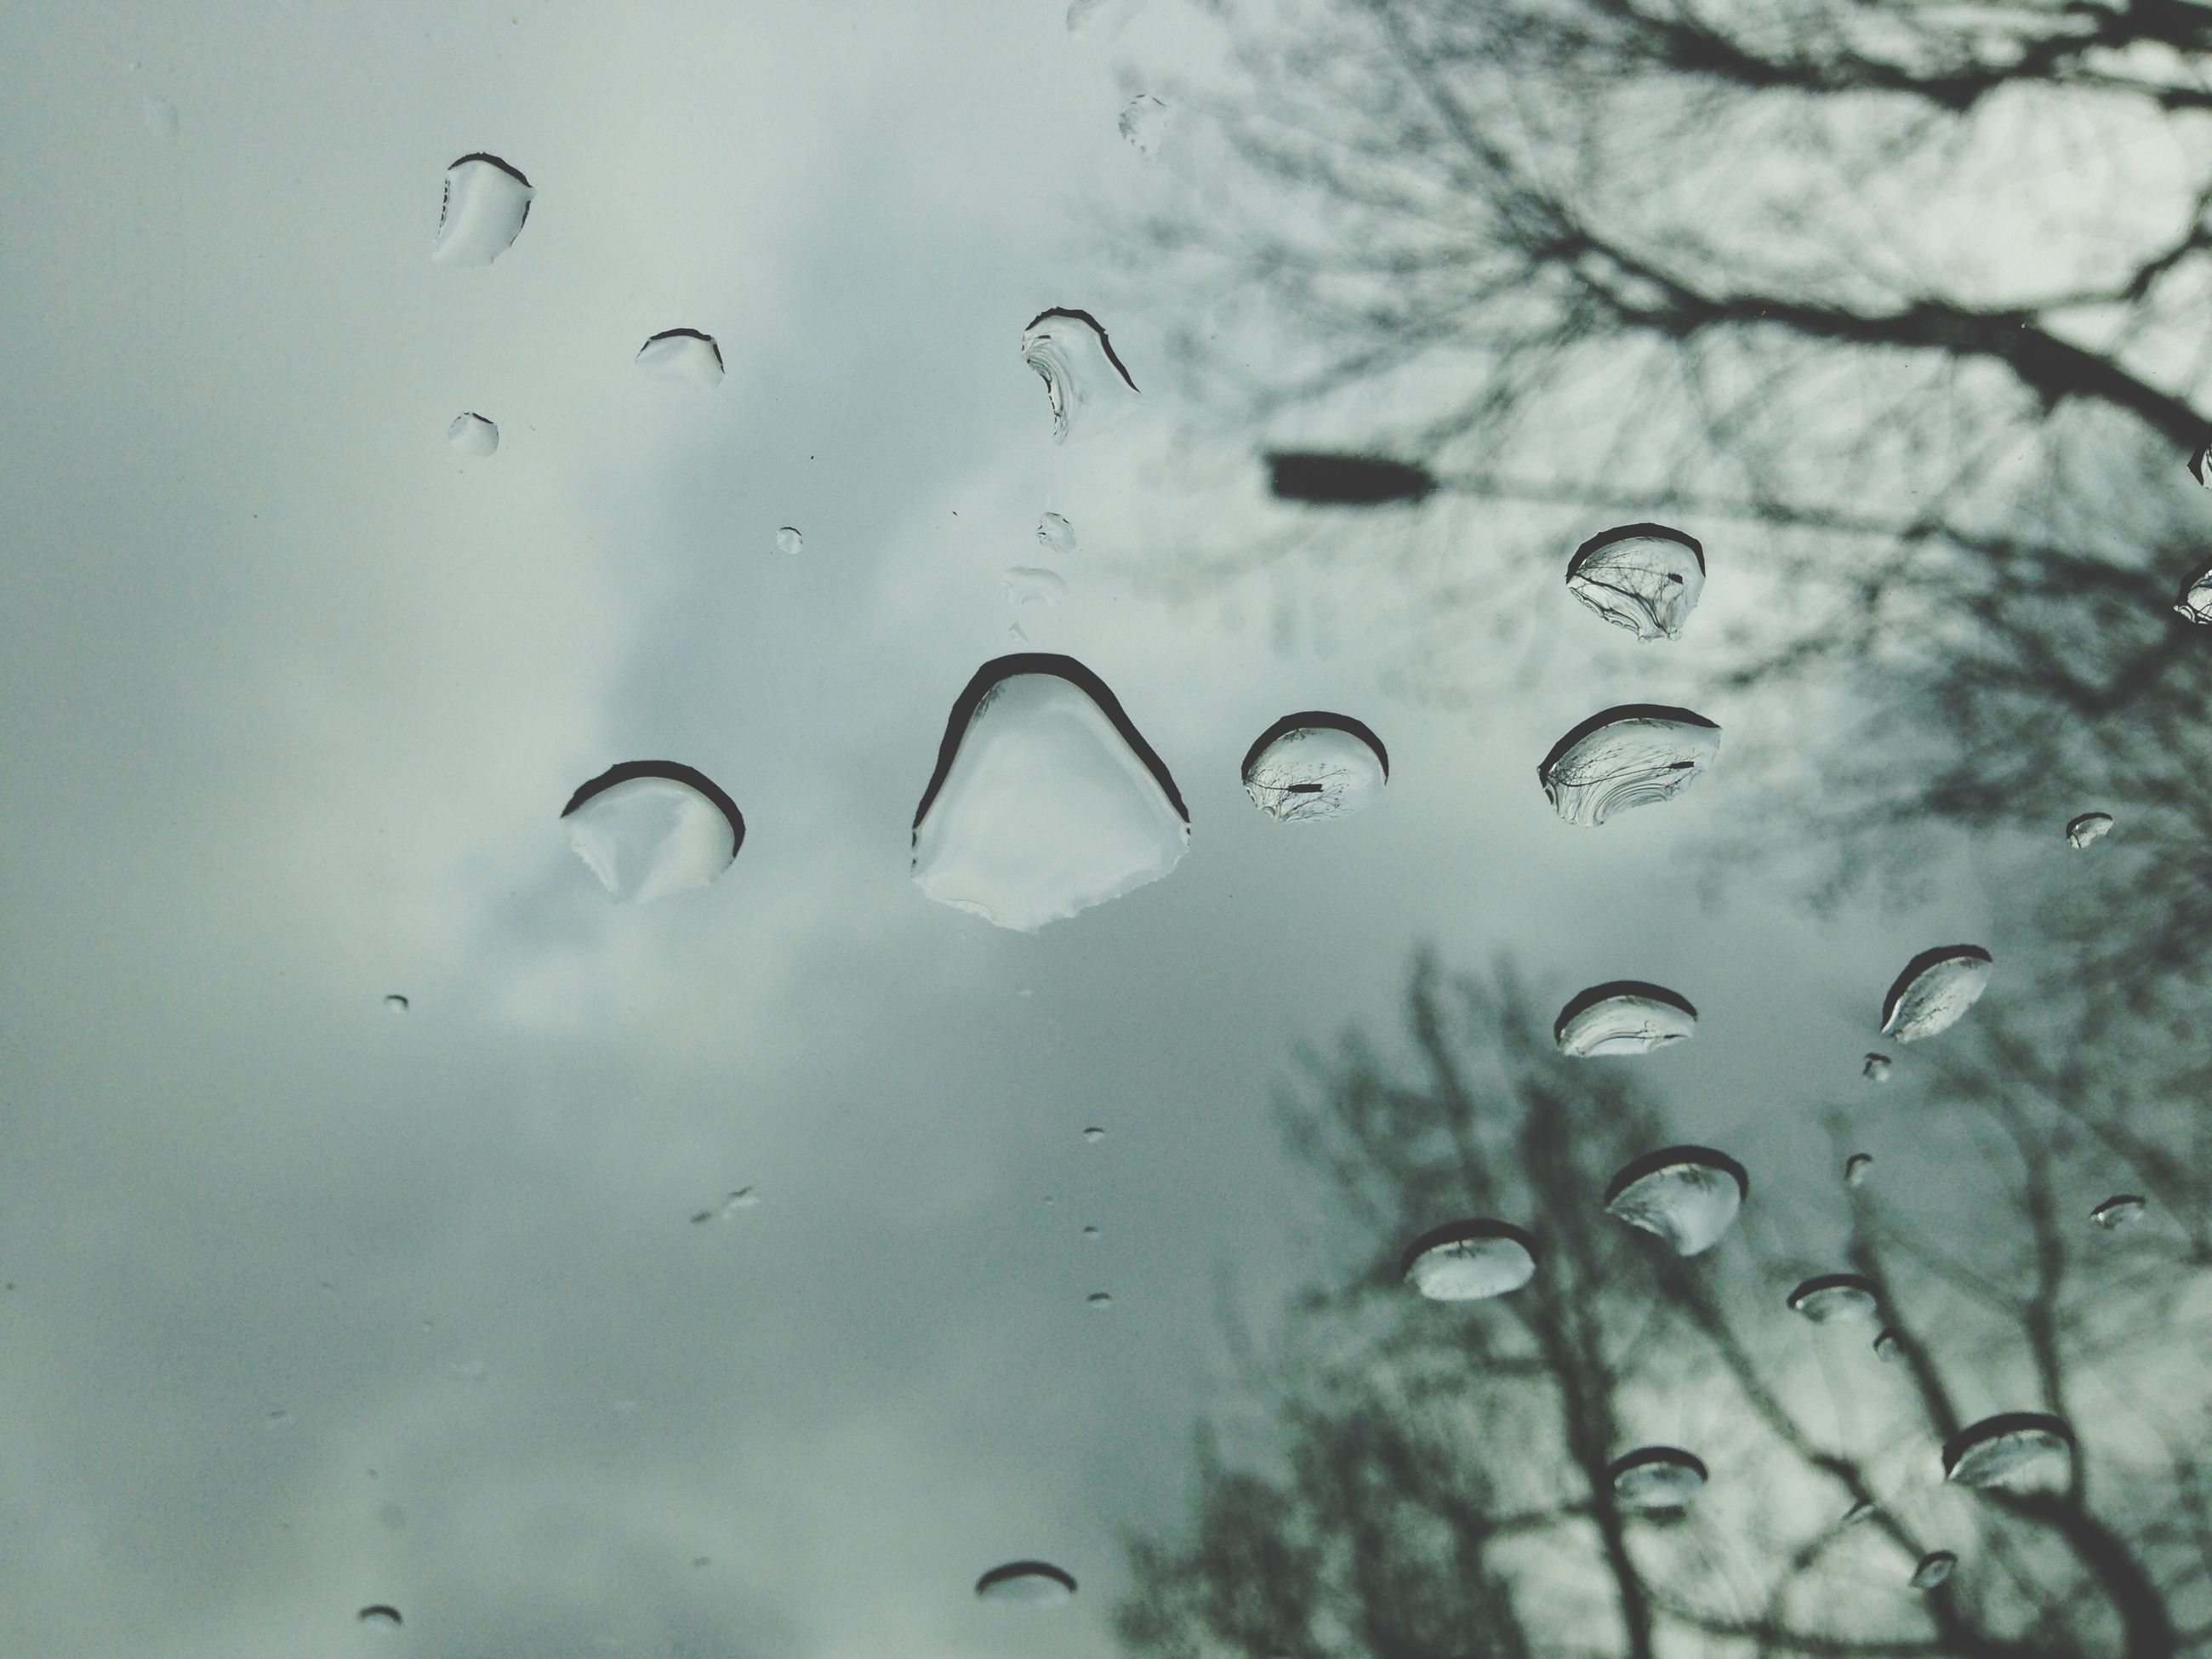 drop, wet, water, rain, raindrop, transparent, window, glass - material, indoors, weather, close-up, focus on foreground, droplet, sky, season, water drop, glass, backgrounds, full frame, no people